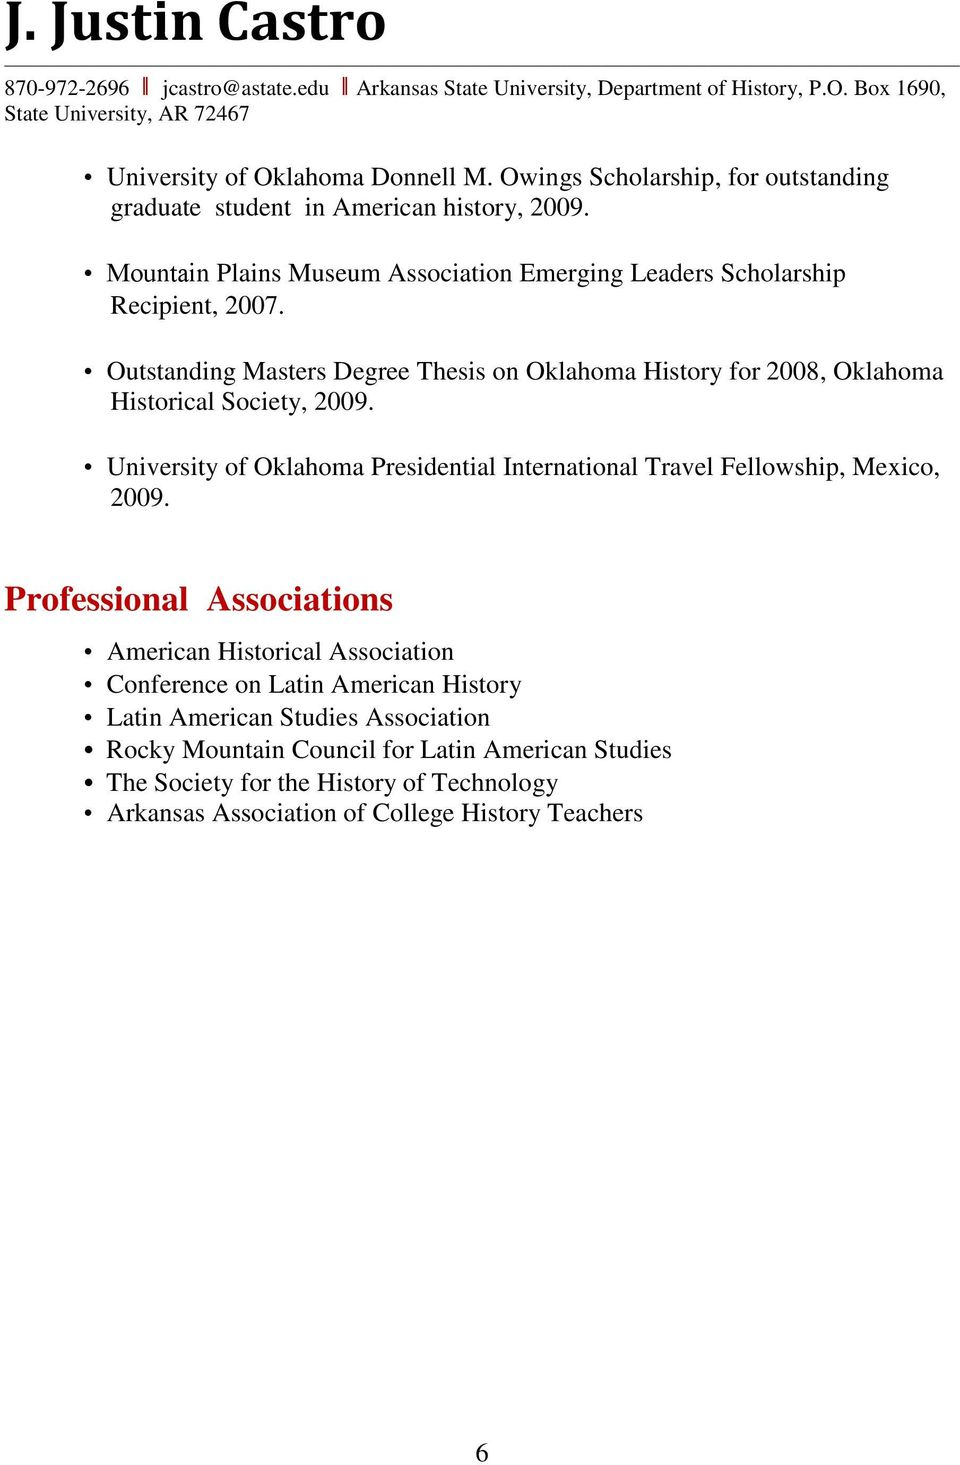 Outstanding Masters Degree Thesis on Oklahoma History for 2008, Oklahoma Historical Society, 2009. University of Oklahoma Presidential International Travel Fellowship, Mexico, 2009.